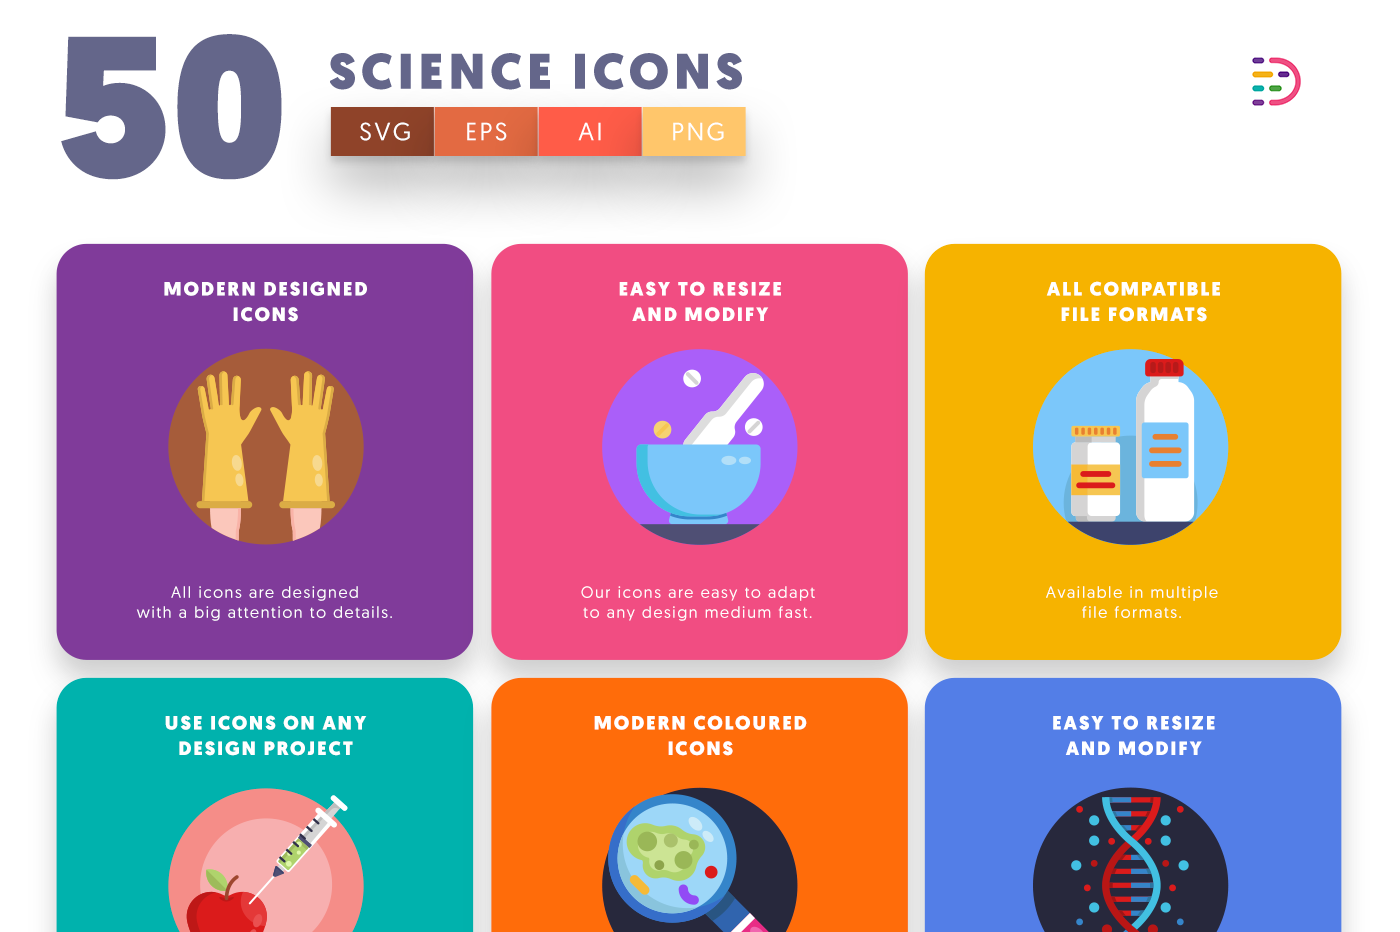 50 Science Icons with colored backgrounds